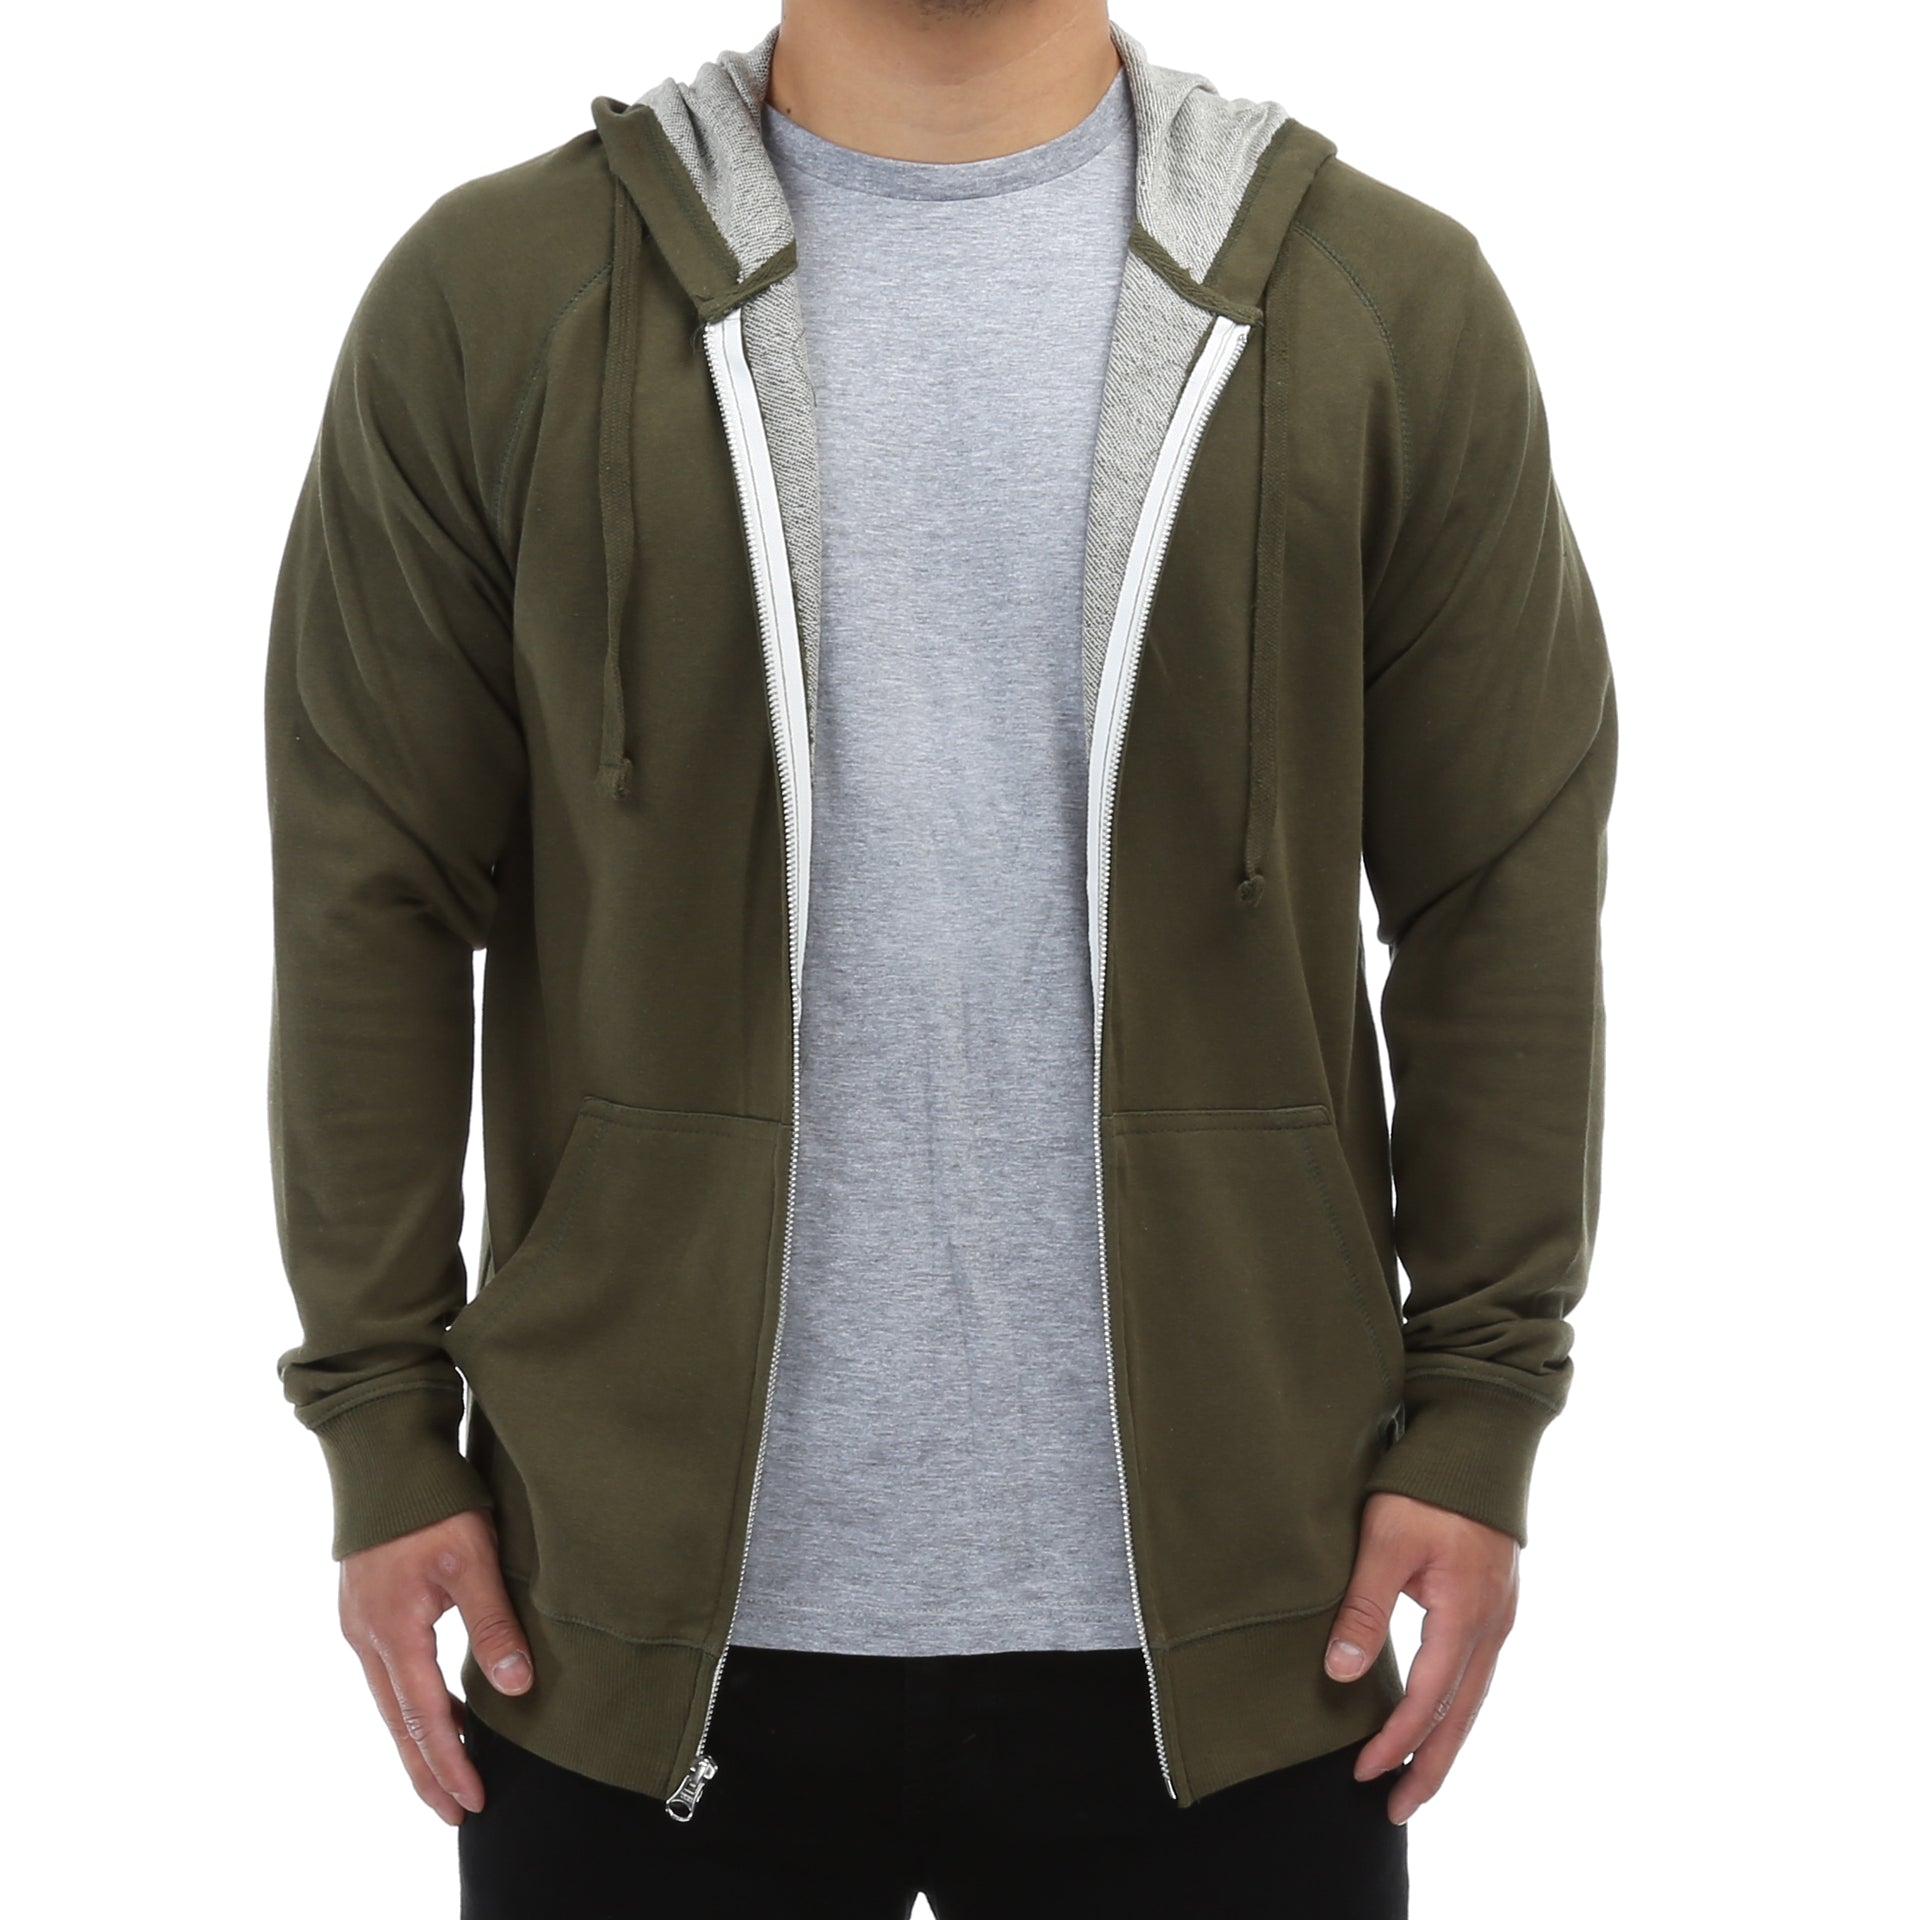 d93da3064 New Star French Terry Zip Up Hoodie - Olive